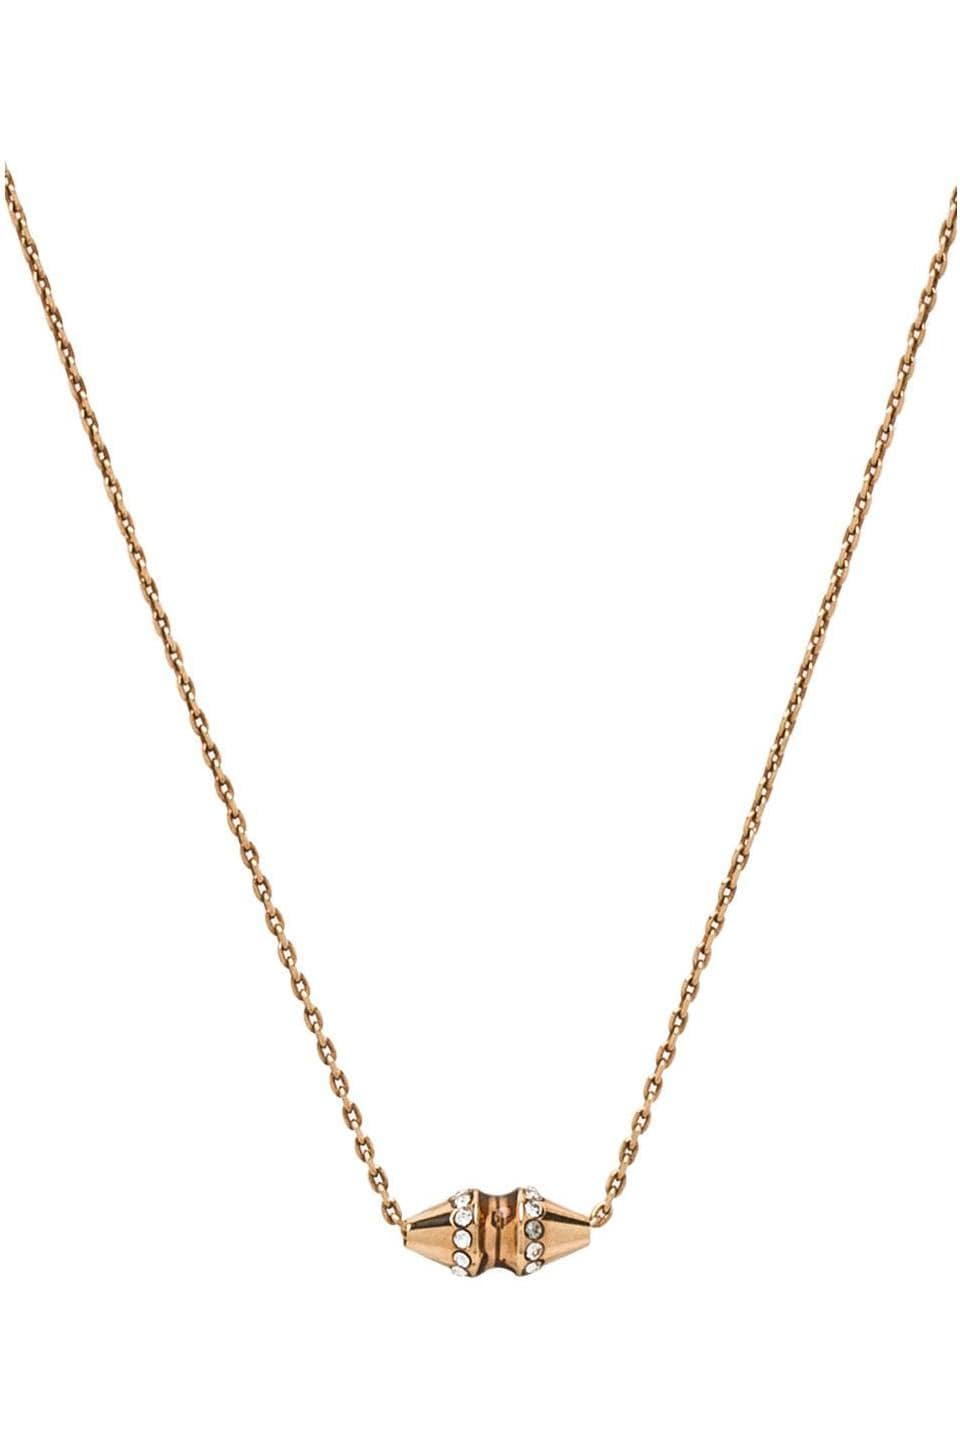 Vita Fede Renata Crystal Necklace in Gold